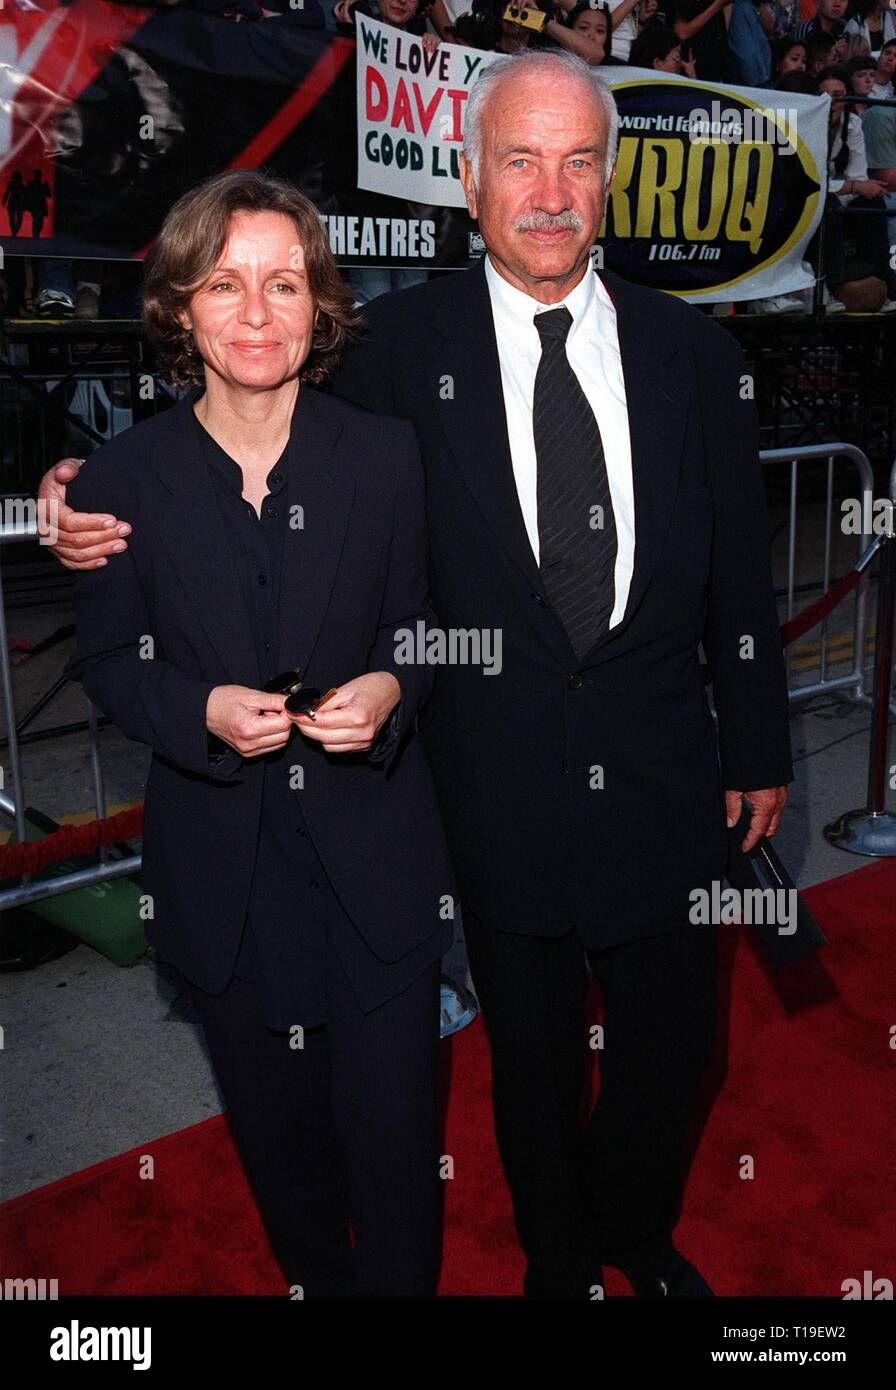 """LOS ANGELES, CA - September 8, 2011:  Actor ARMIN MUELLER-STAHL & wife at the world premiere, in Los Angeles, of his new movie """"The X-Files."""" Stock Photo"""